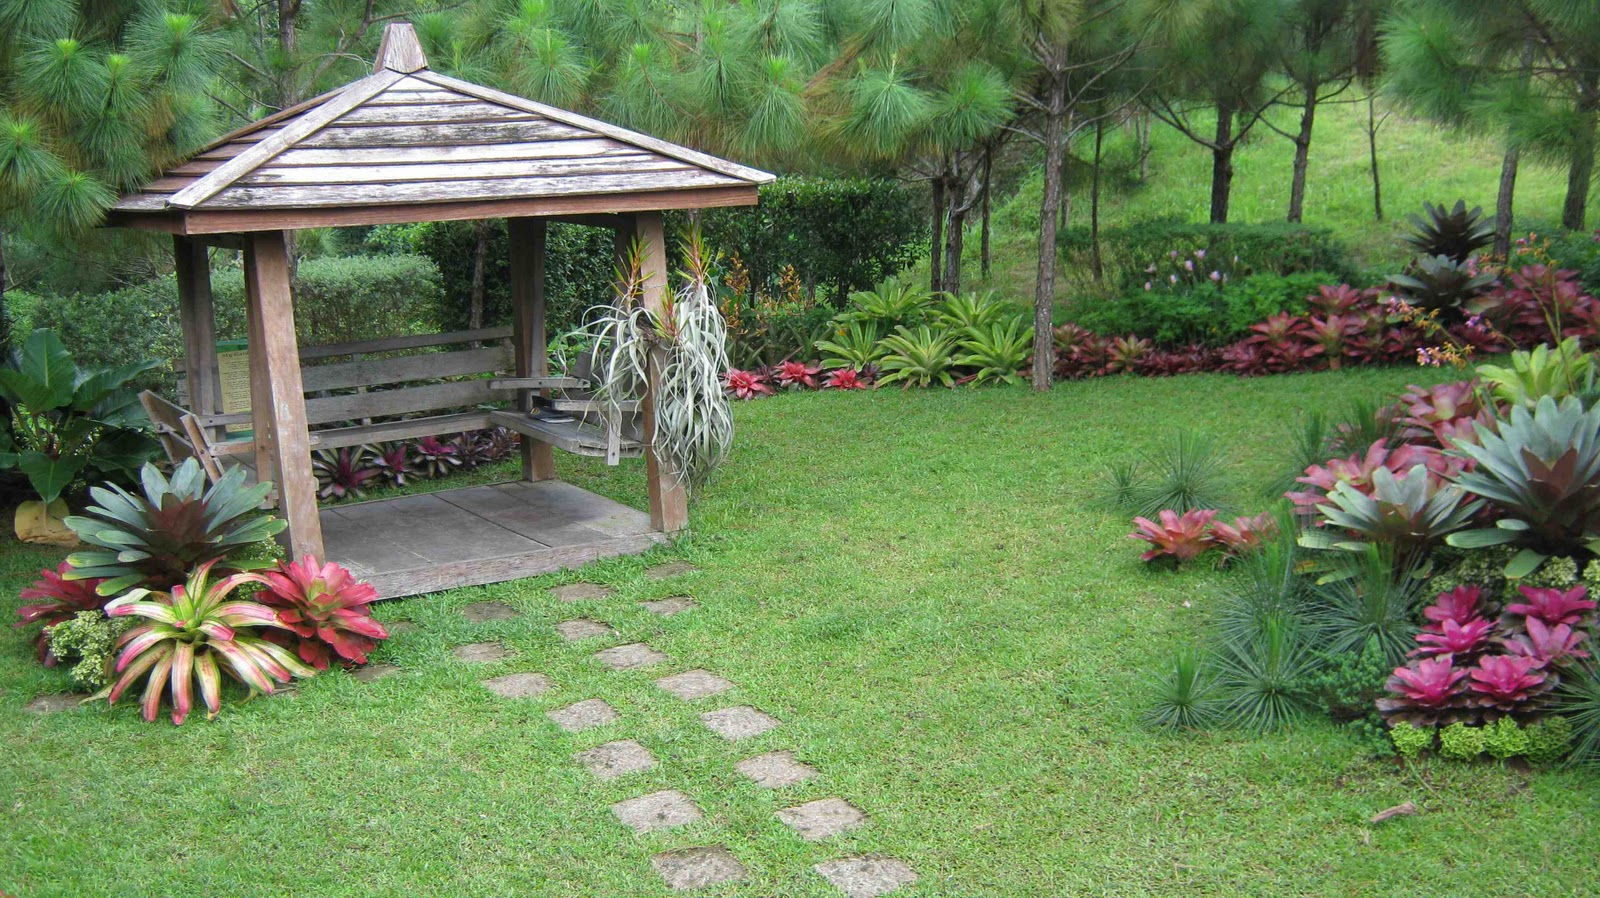 Philippine gardener gardens at crosswinds tagaytay for Pocket garden designs philippines